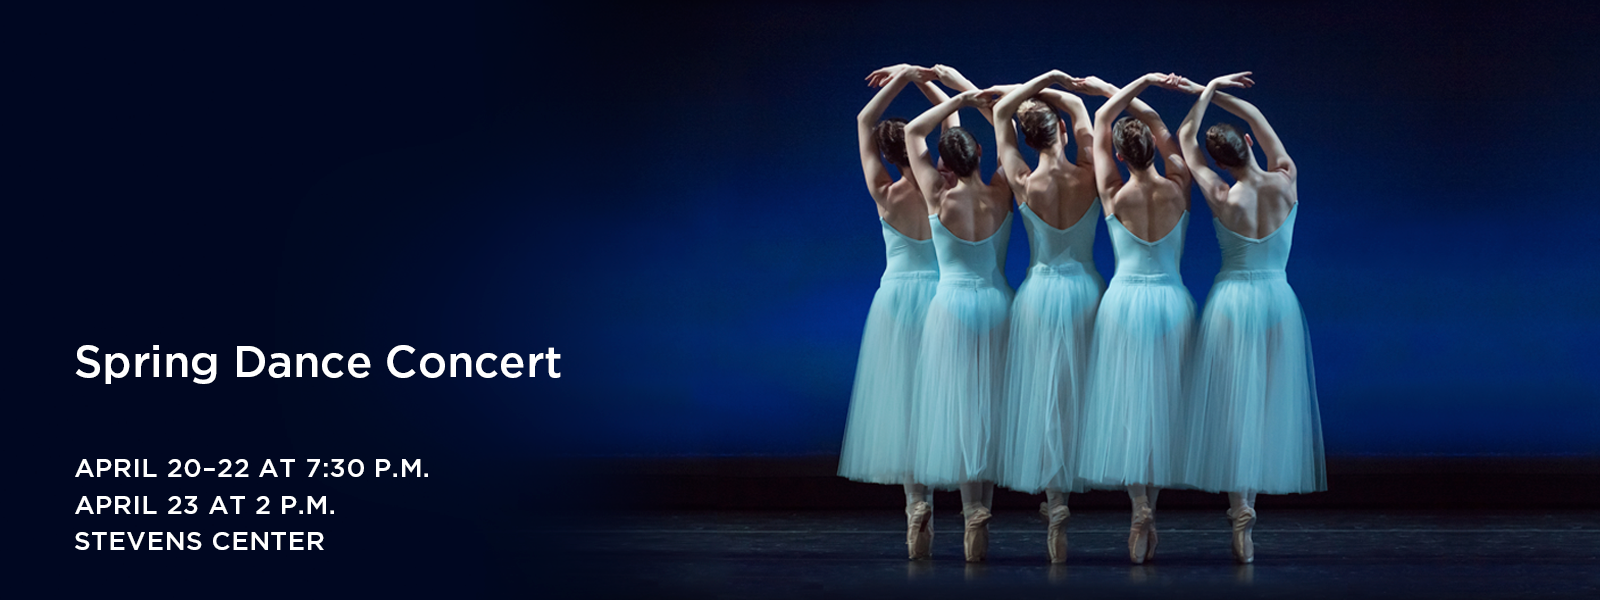 Get a taste of all things dance with a showcase of ballet and contemporary works. >> BUY TICKETS